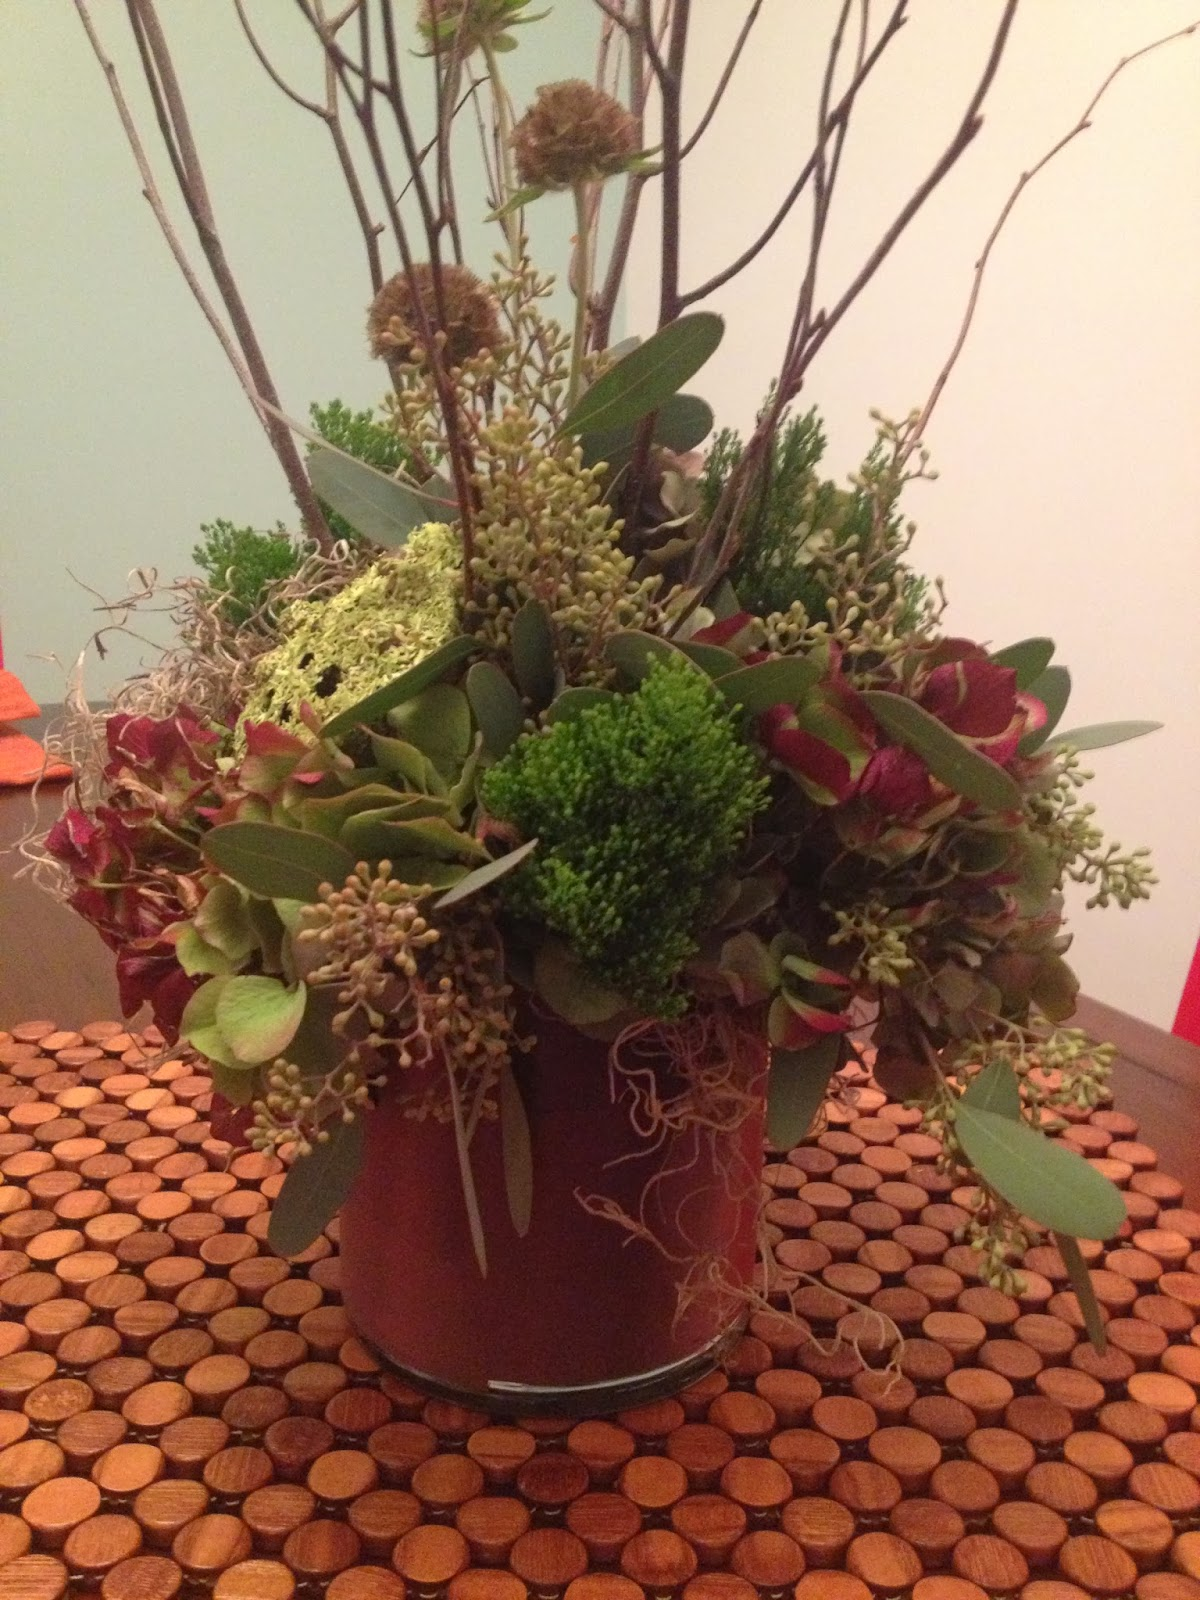 Helen Olivia Floral Design Classes Ingredient List From